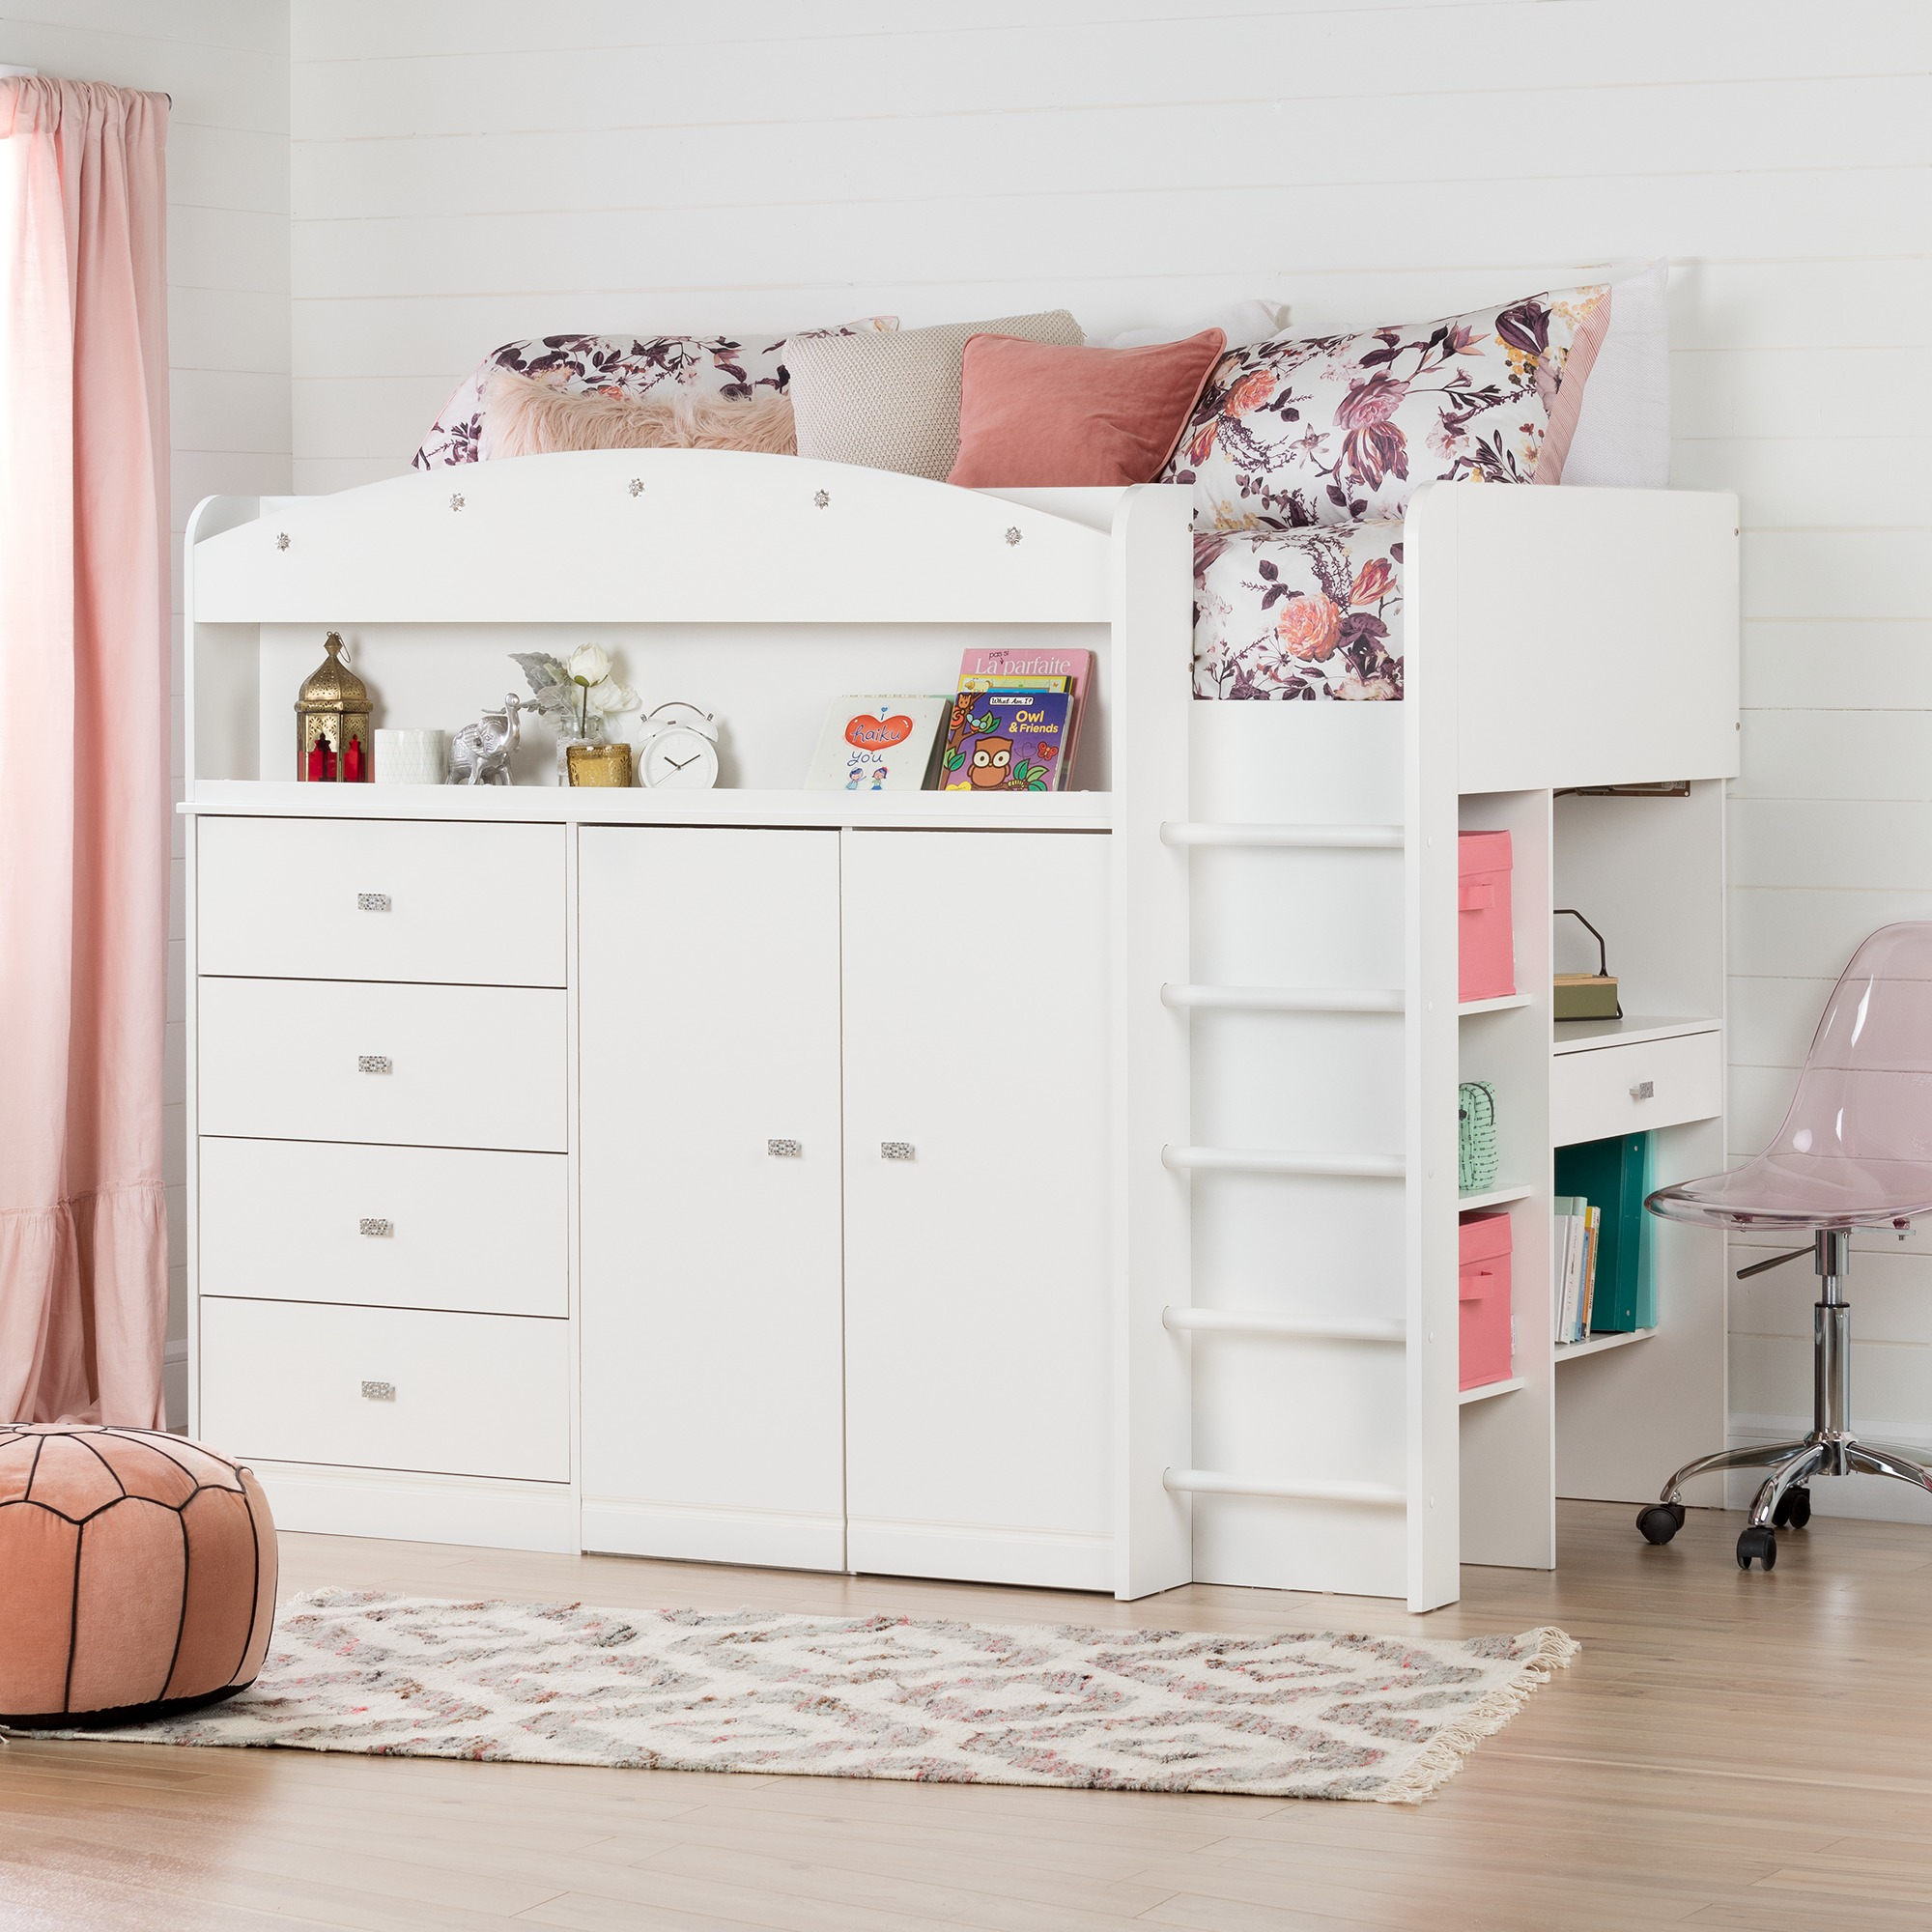 South Shore Tiara White Twin Loft Bed with Desk (39'')